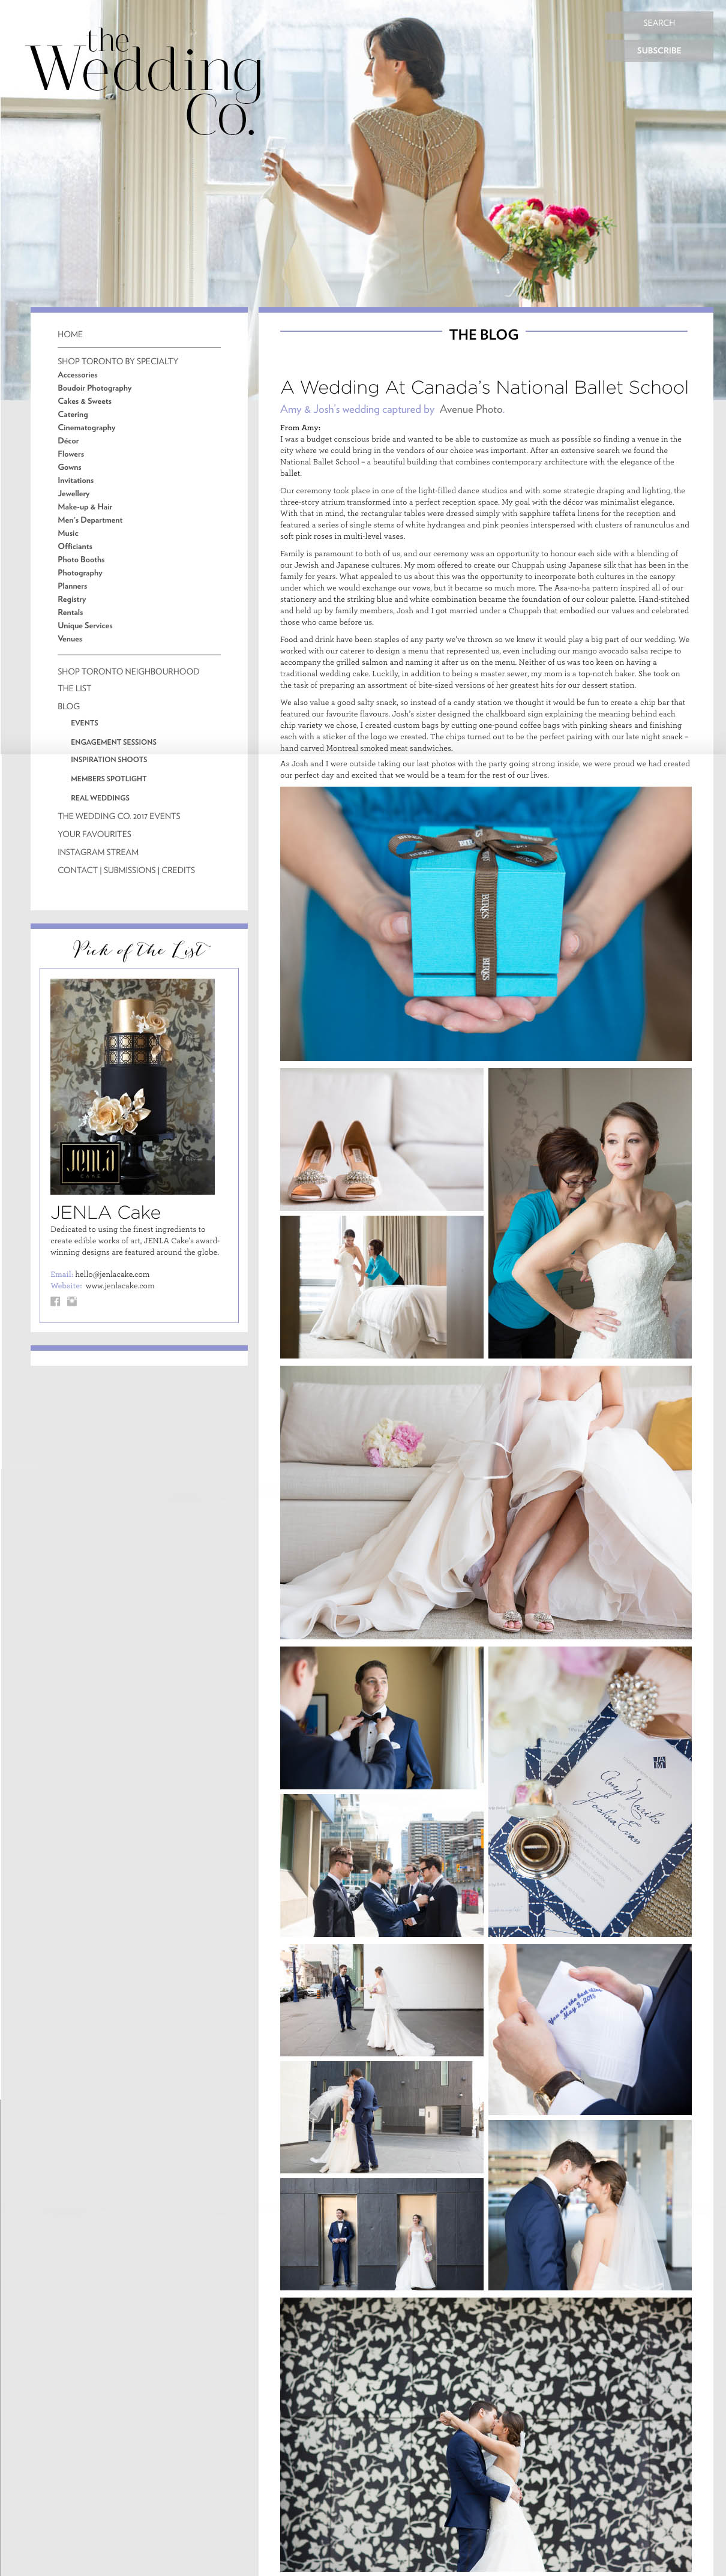 Canada's National Ballet School Wedding featured on The Wedding Co.